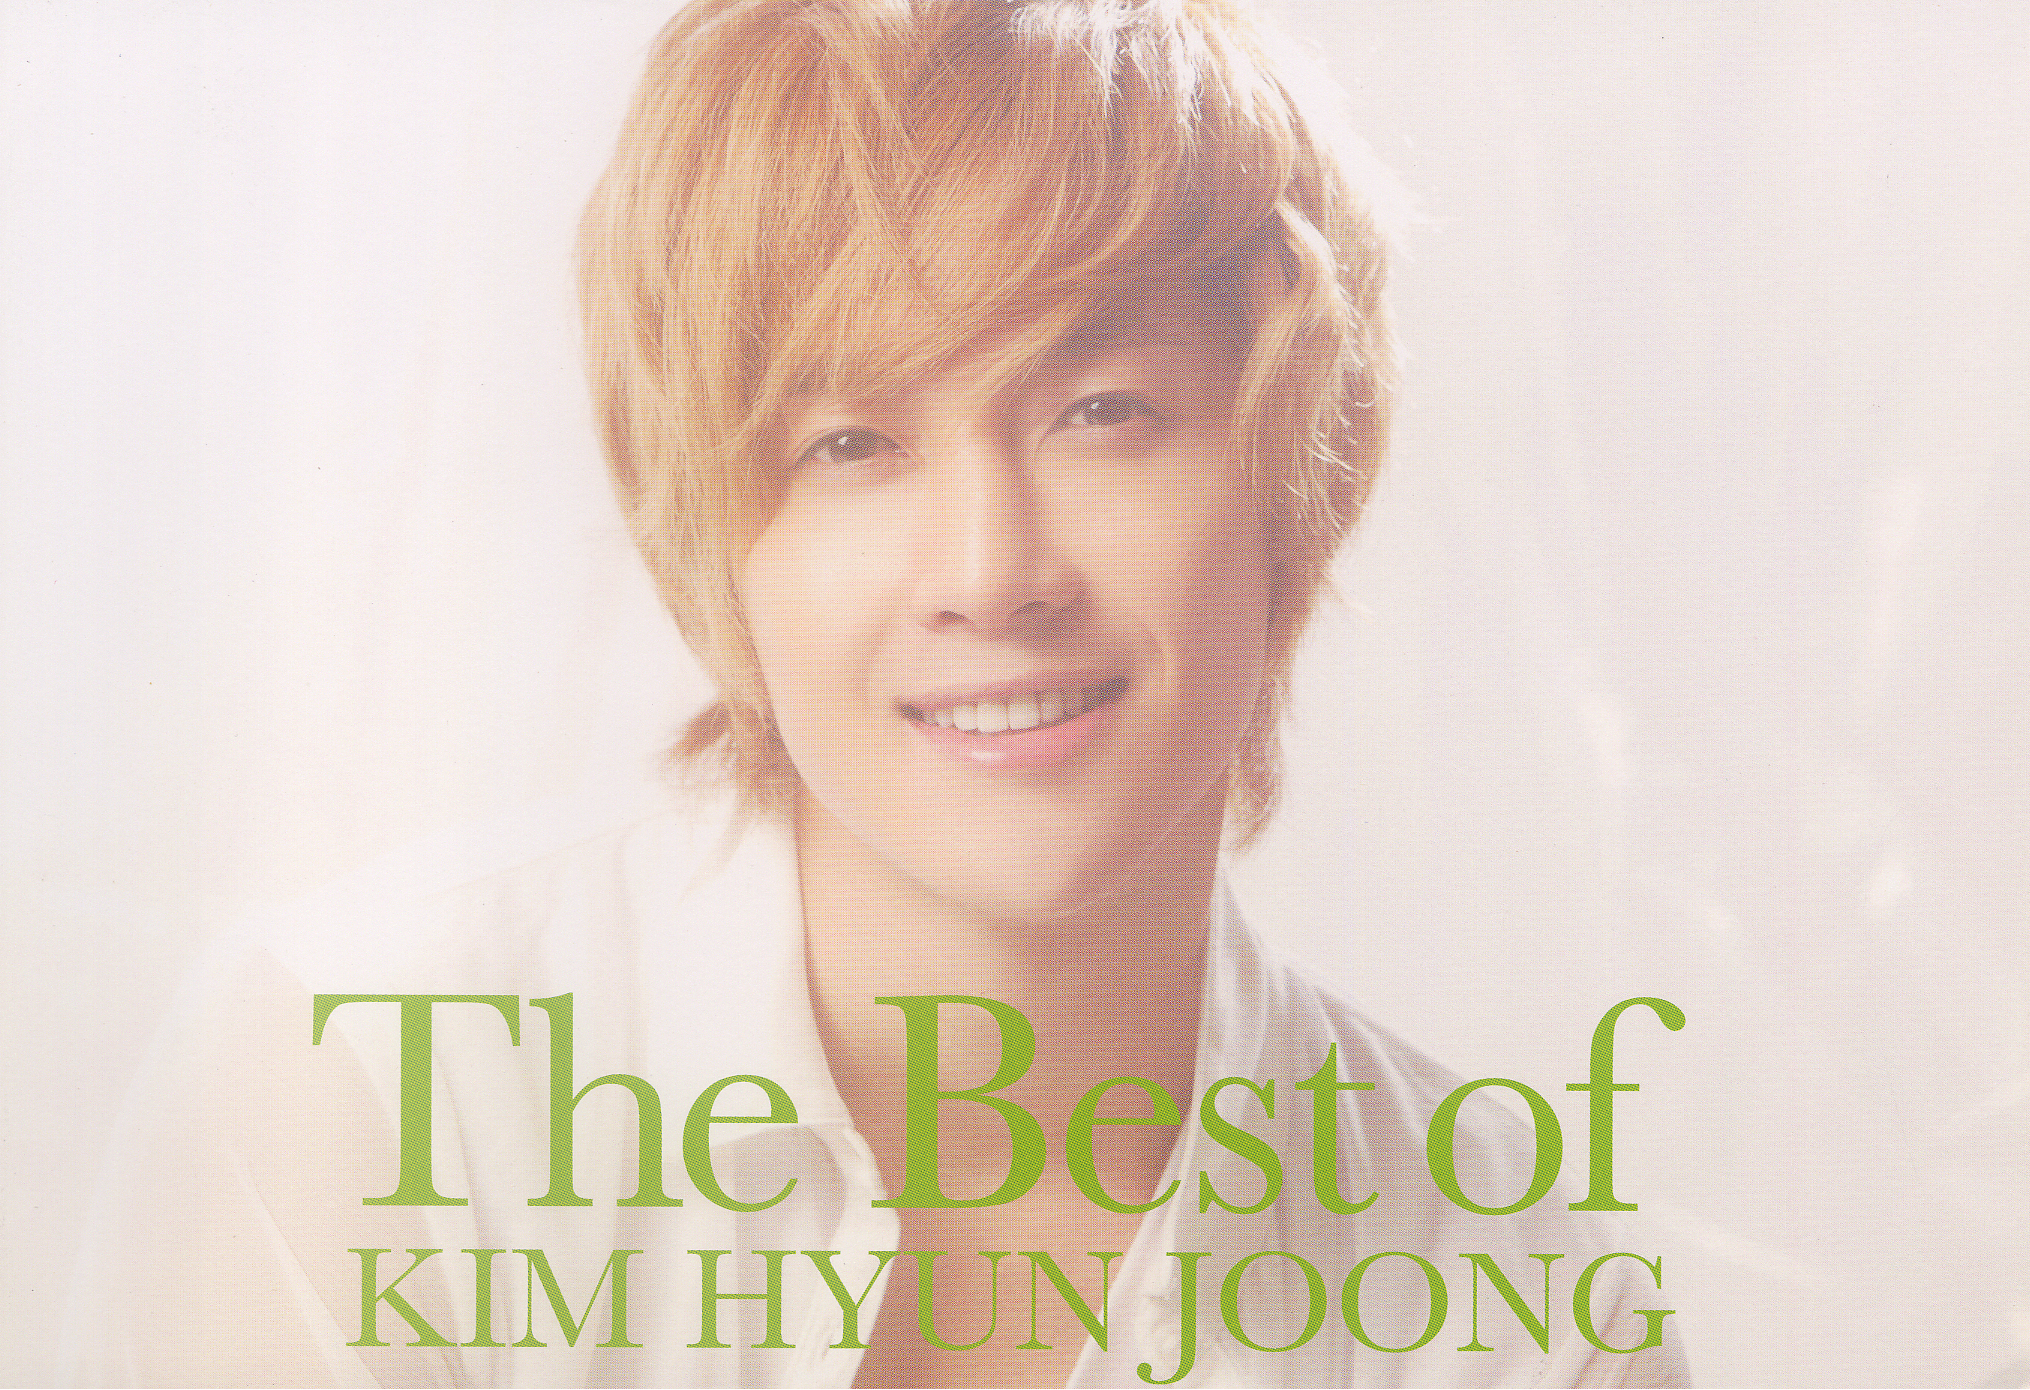 The Best Of Kim Hyun Joong CD